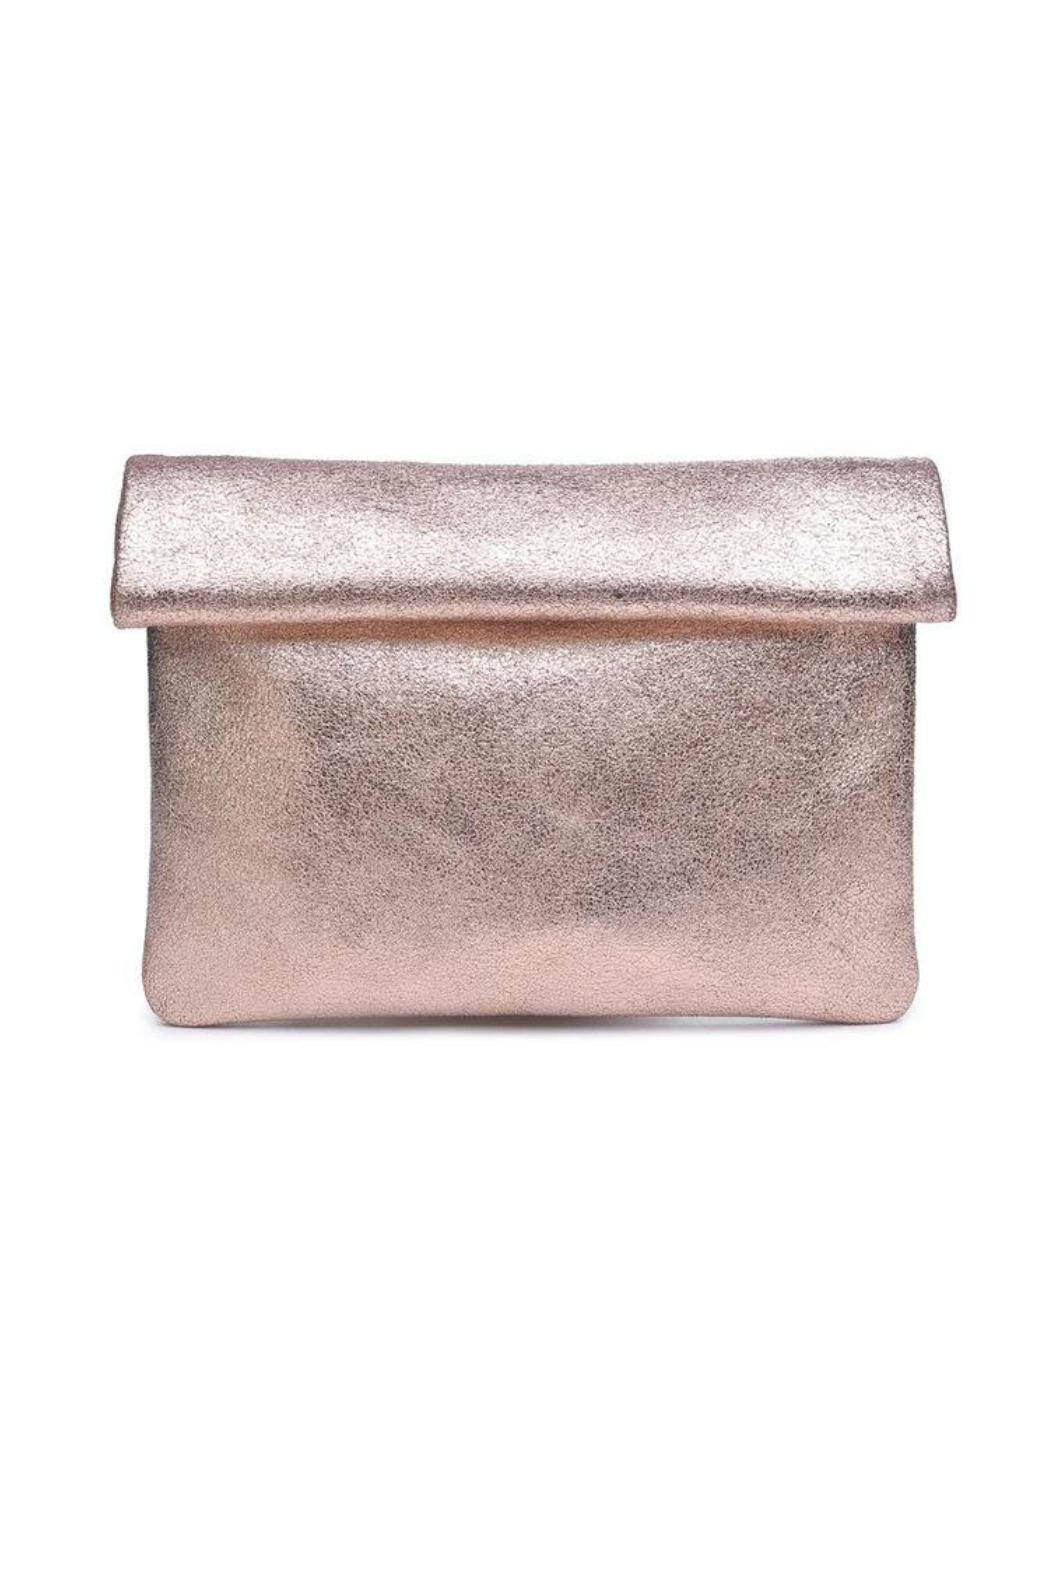 Moda Luxe Gianna Metallic-Leather Clutch - Main Image